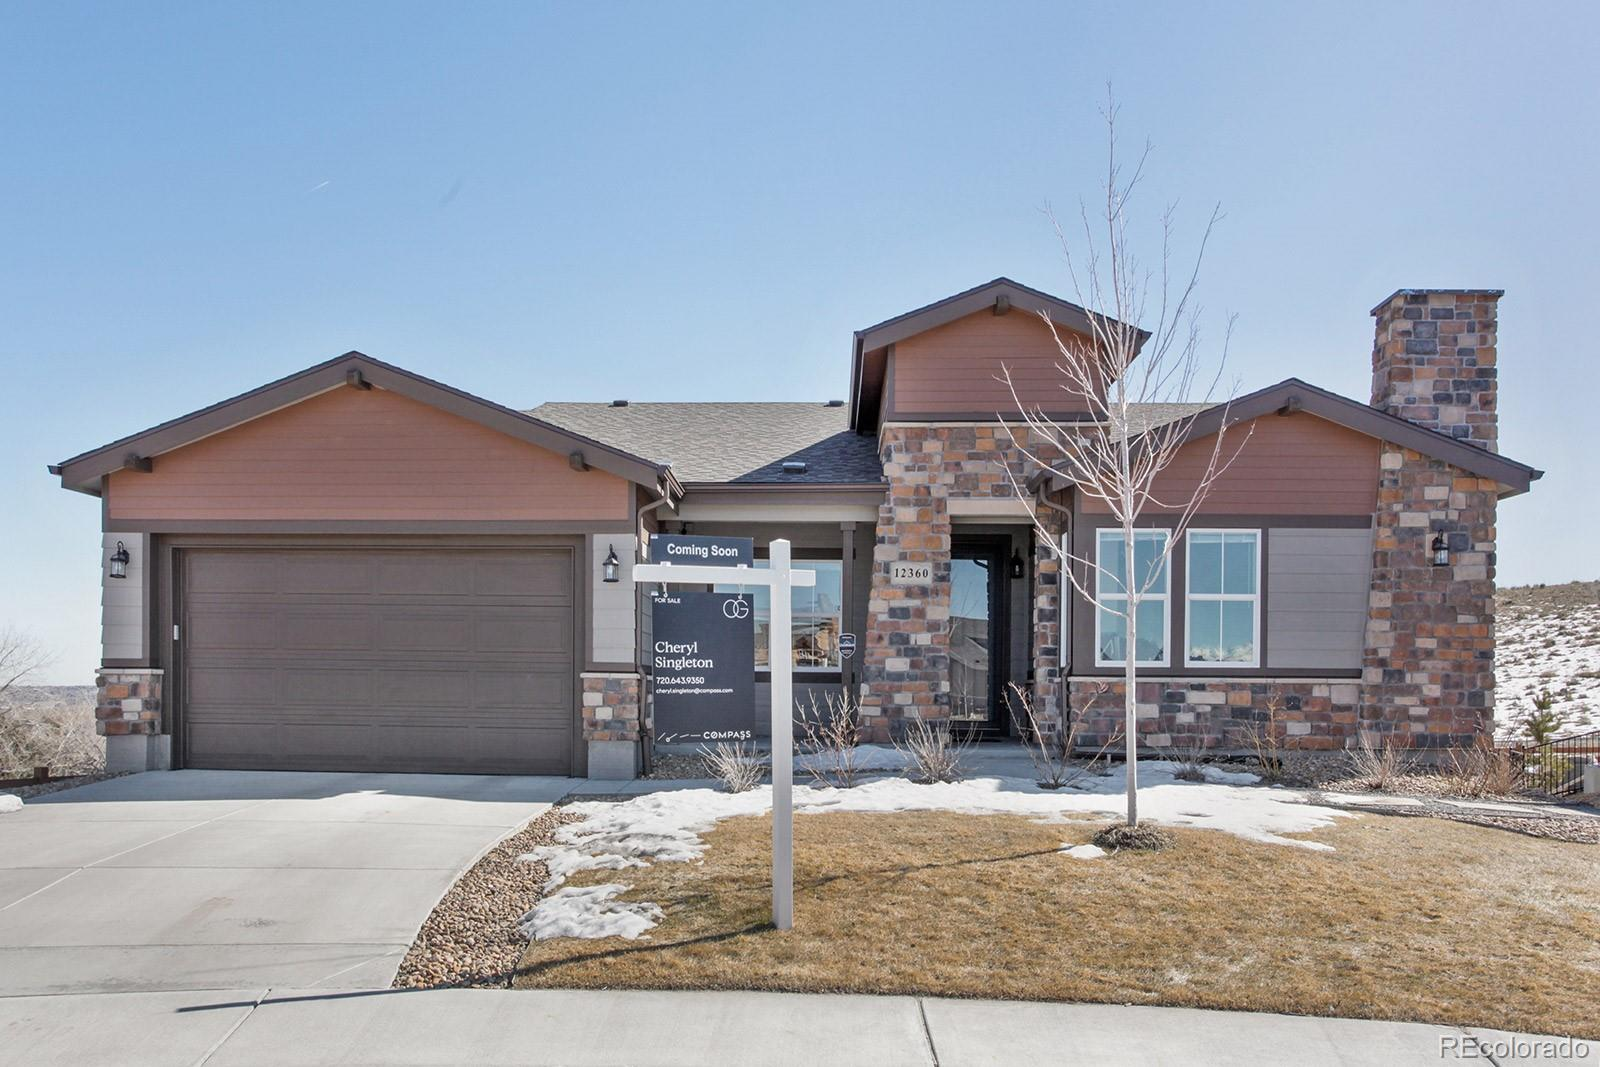 12360 W Big Horn Ct, Broomfield, CO 80021 - Broomfield, CO real estate listing